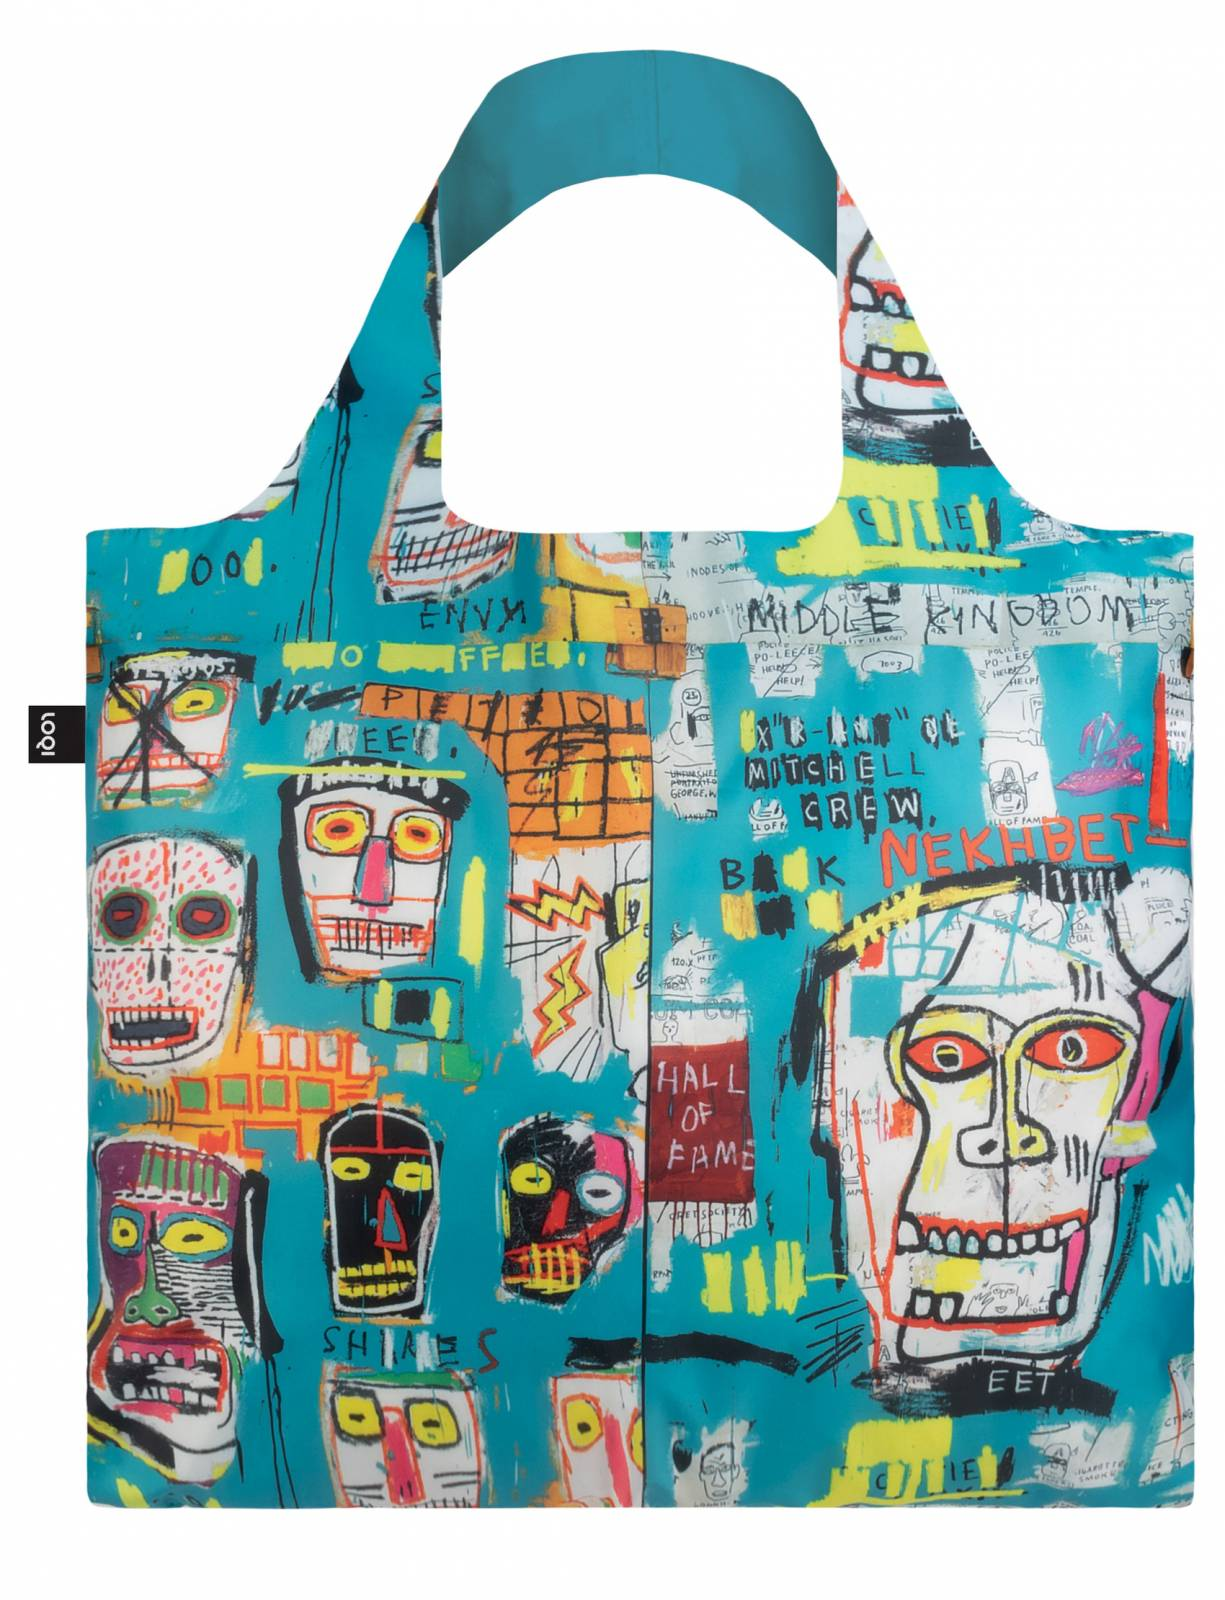 Jean Michel Basquiat Skull Bag - Reusable Tote Bag With Pouch thumbnails